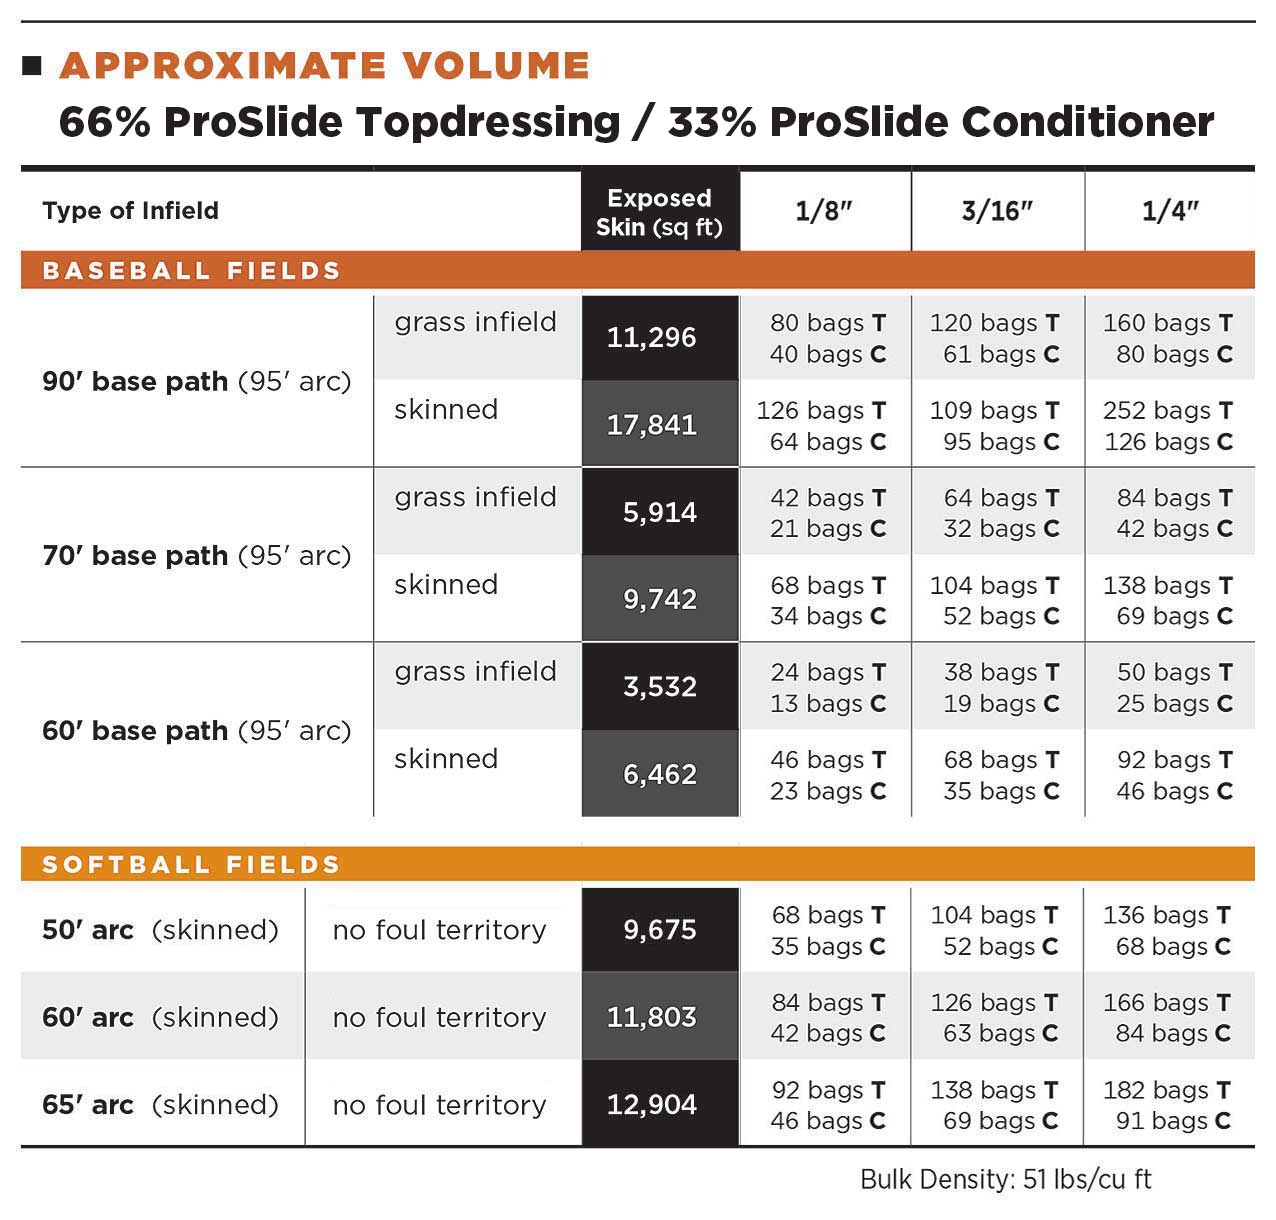 66% ProSlide Topdressing / 33% ProSlide Conditioner Volume Table